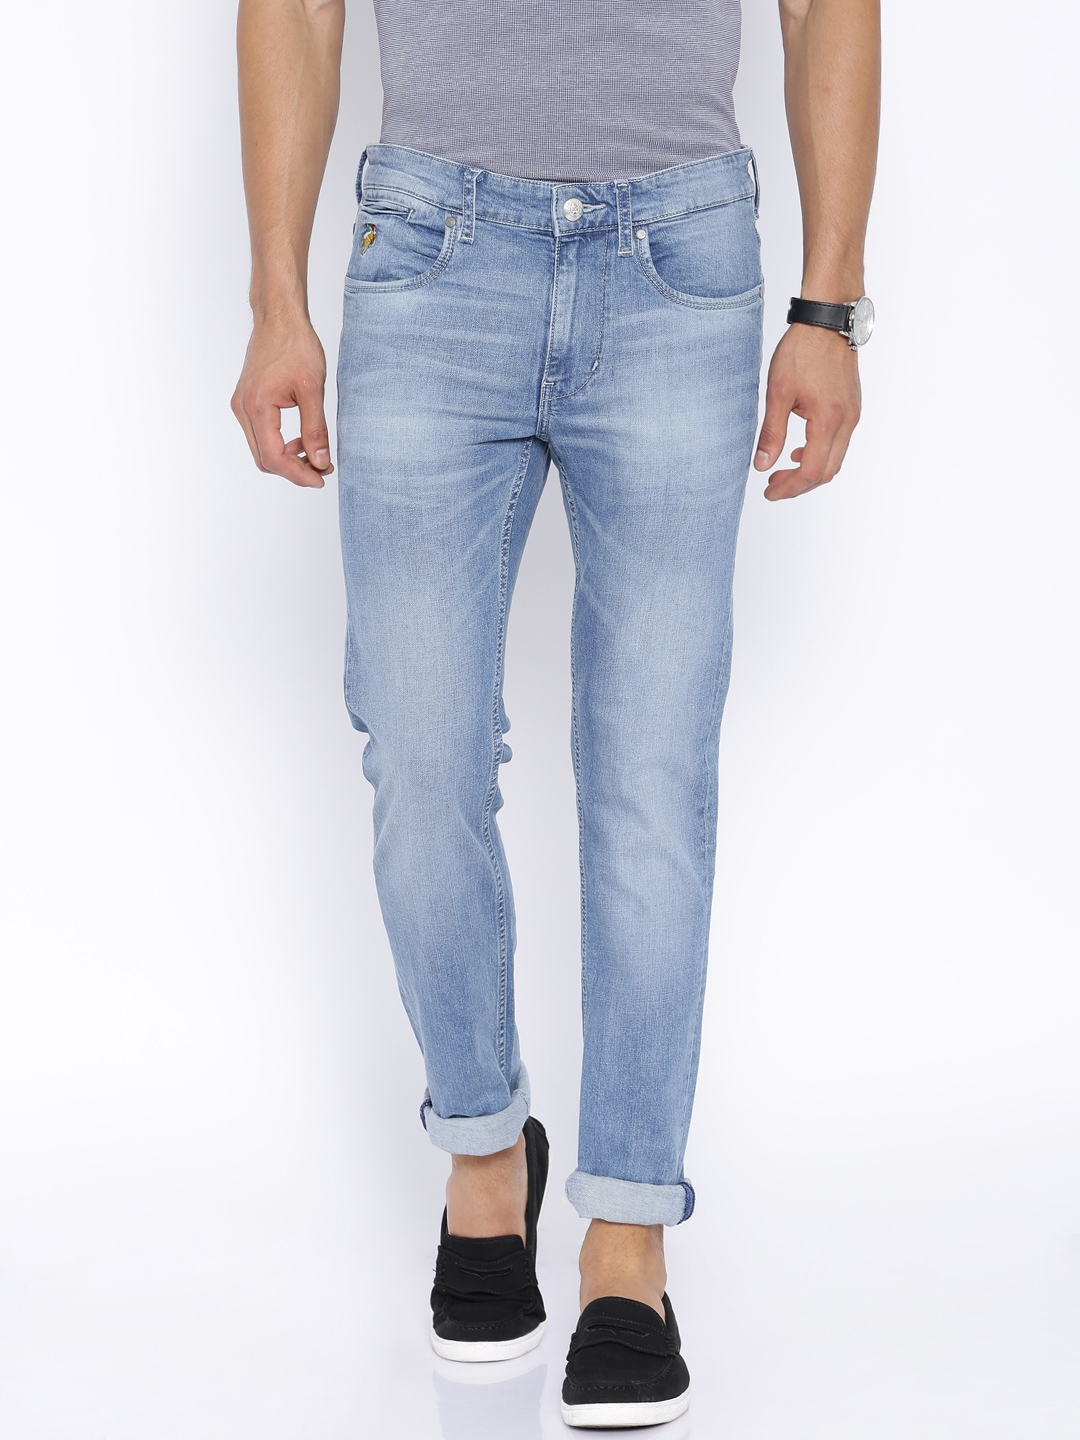 2249f7b6b8 Buy U.S. Polo Assn. Denim Co. Blue Washed Regallo Skinny Jeans - Jeans for  Men 1142150